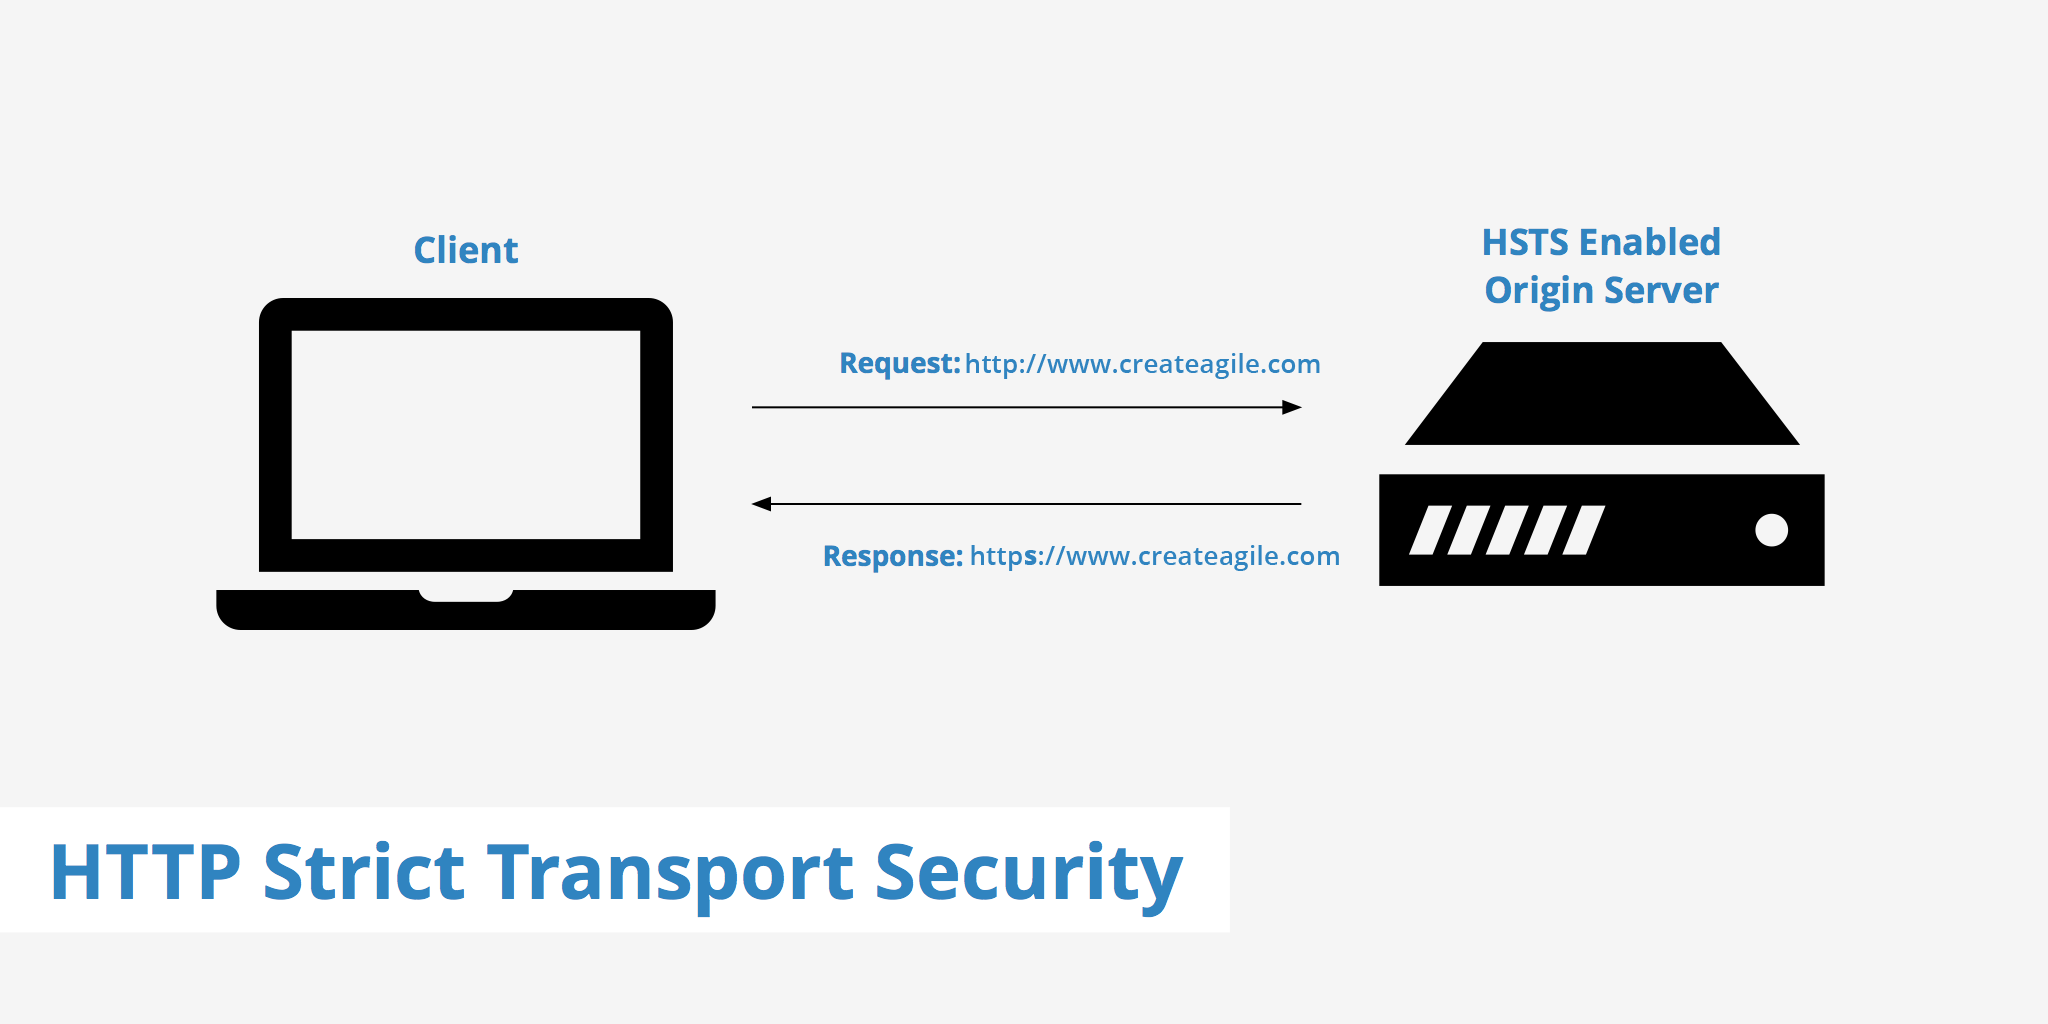 How to enable HTTP Strict Transport Security (HSTS) for your site